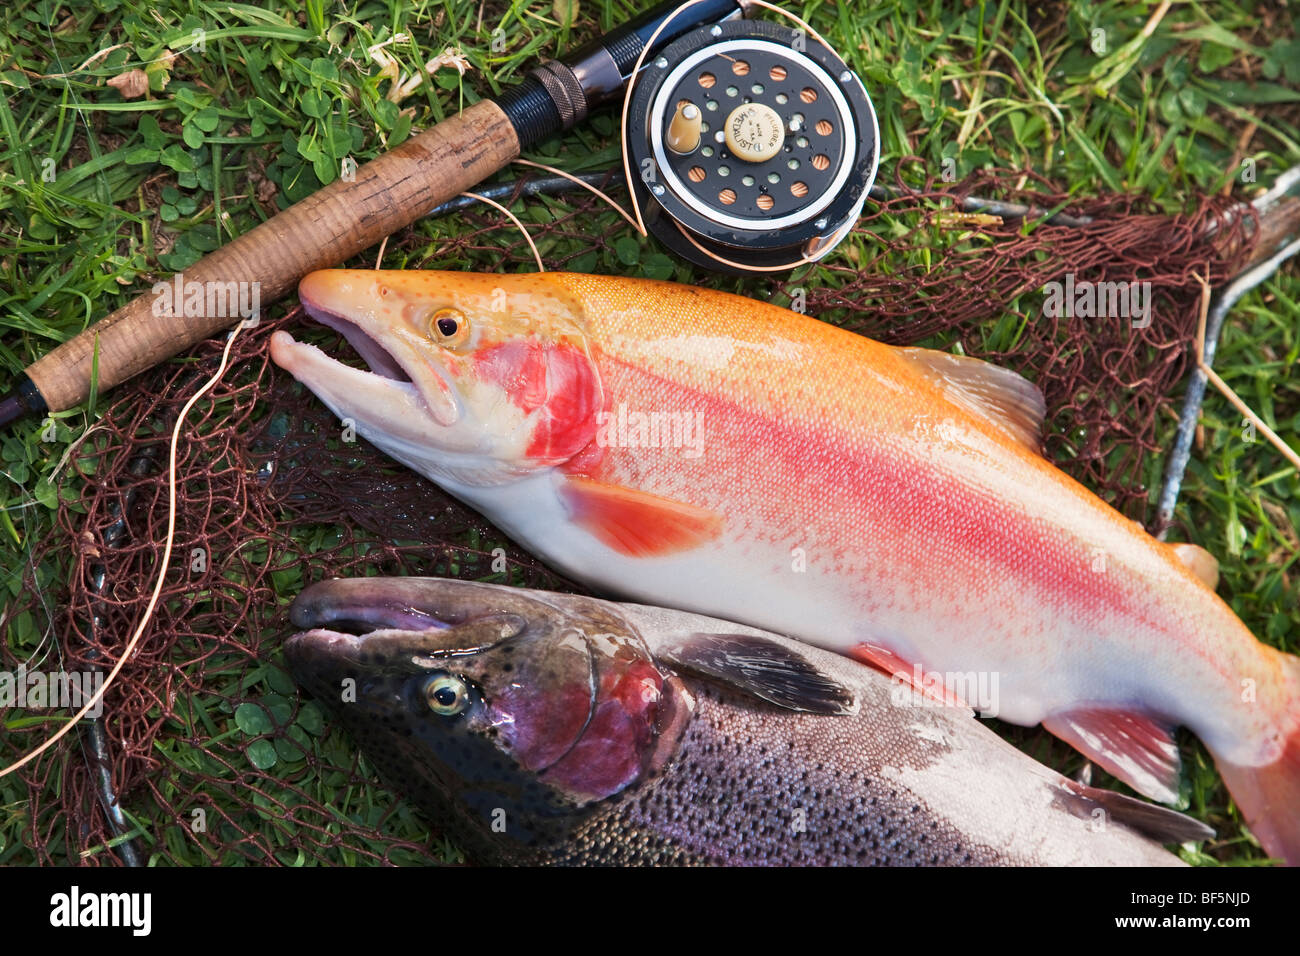 golden trout, rainbow trout rod, reel and net - Stock Image